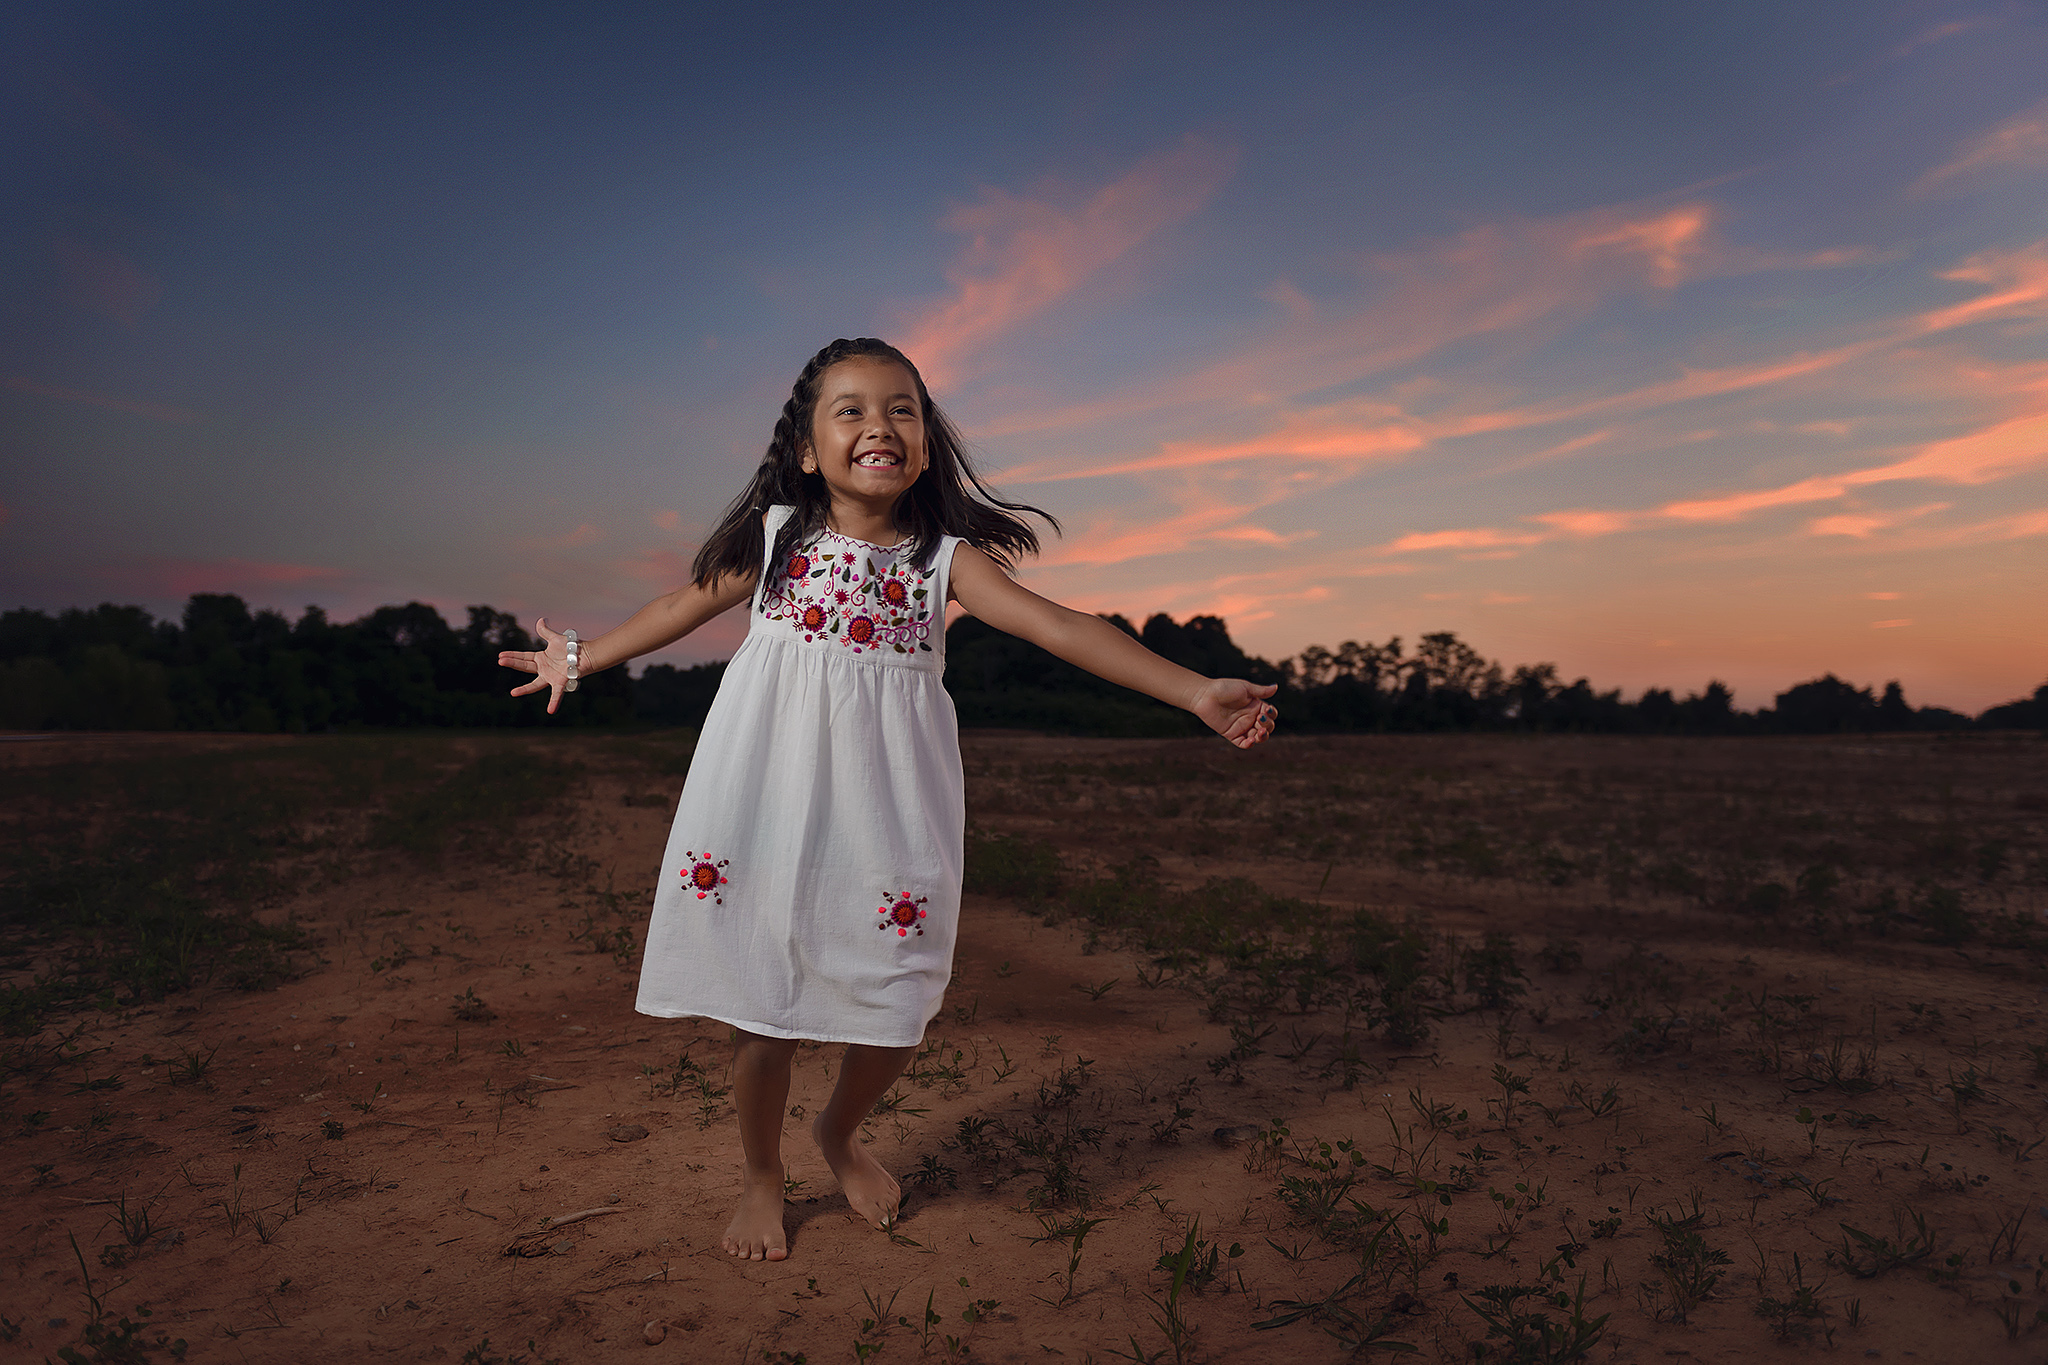 Child photography at sunset